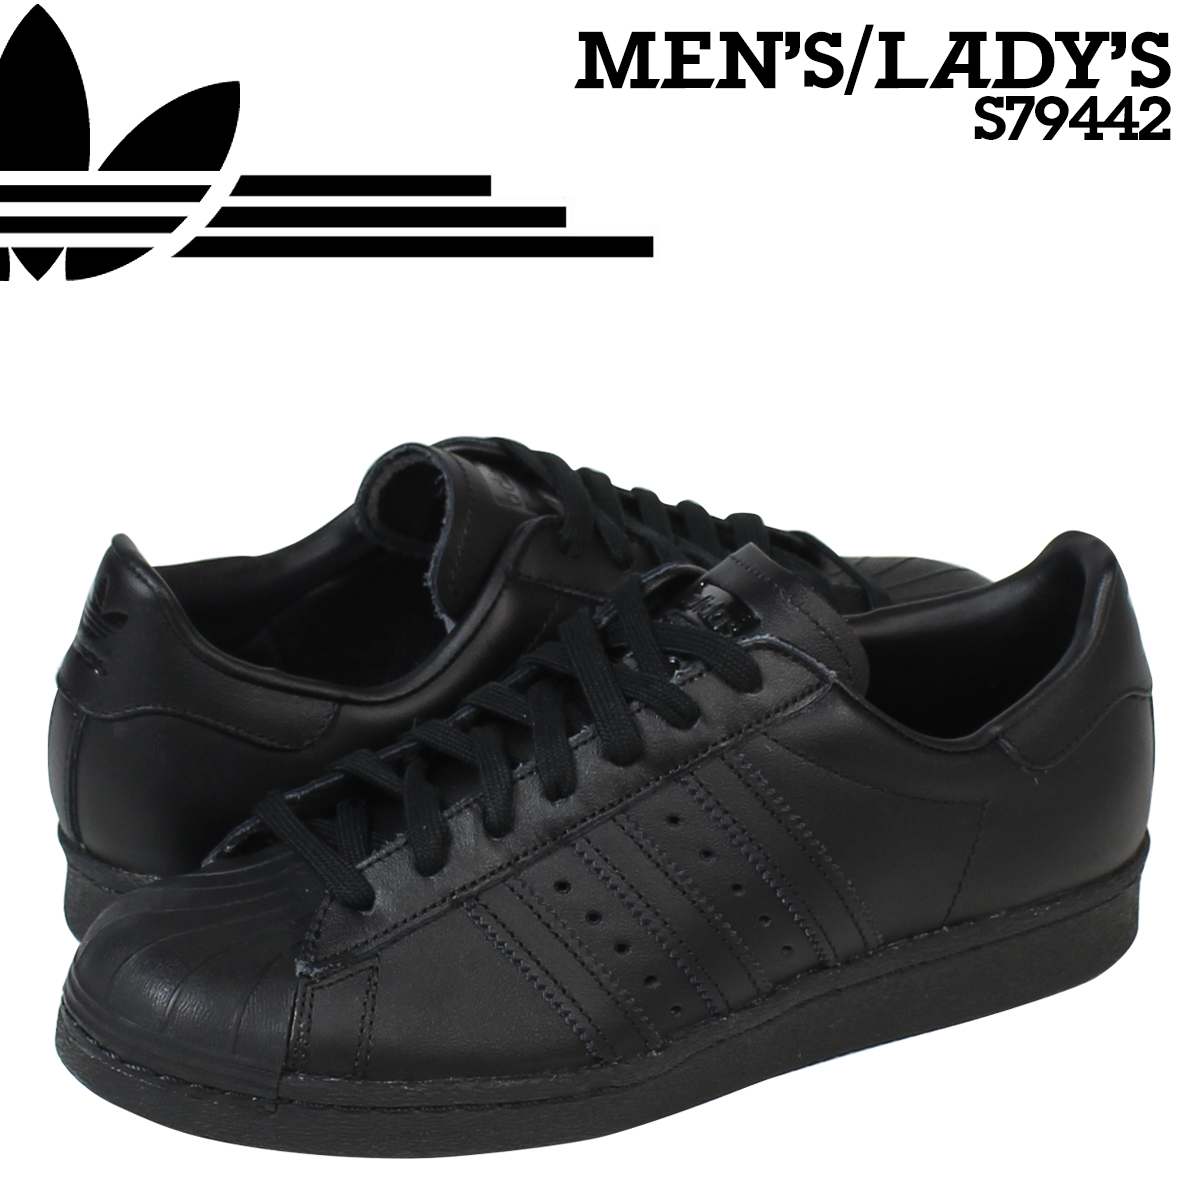 cb02208010 Whats up Sports: adidas Originals adidas originals superstar triple TNA sneakers  SUPERSTAR 80 s TRIPLE TONA S79442 men's women's shoes black [8/5 Add in ...